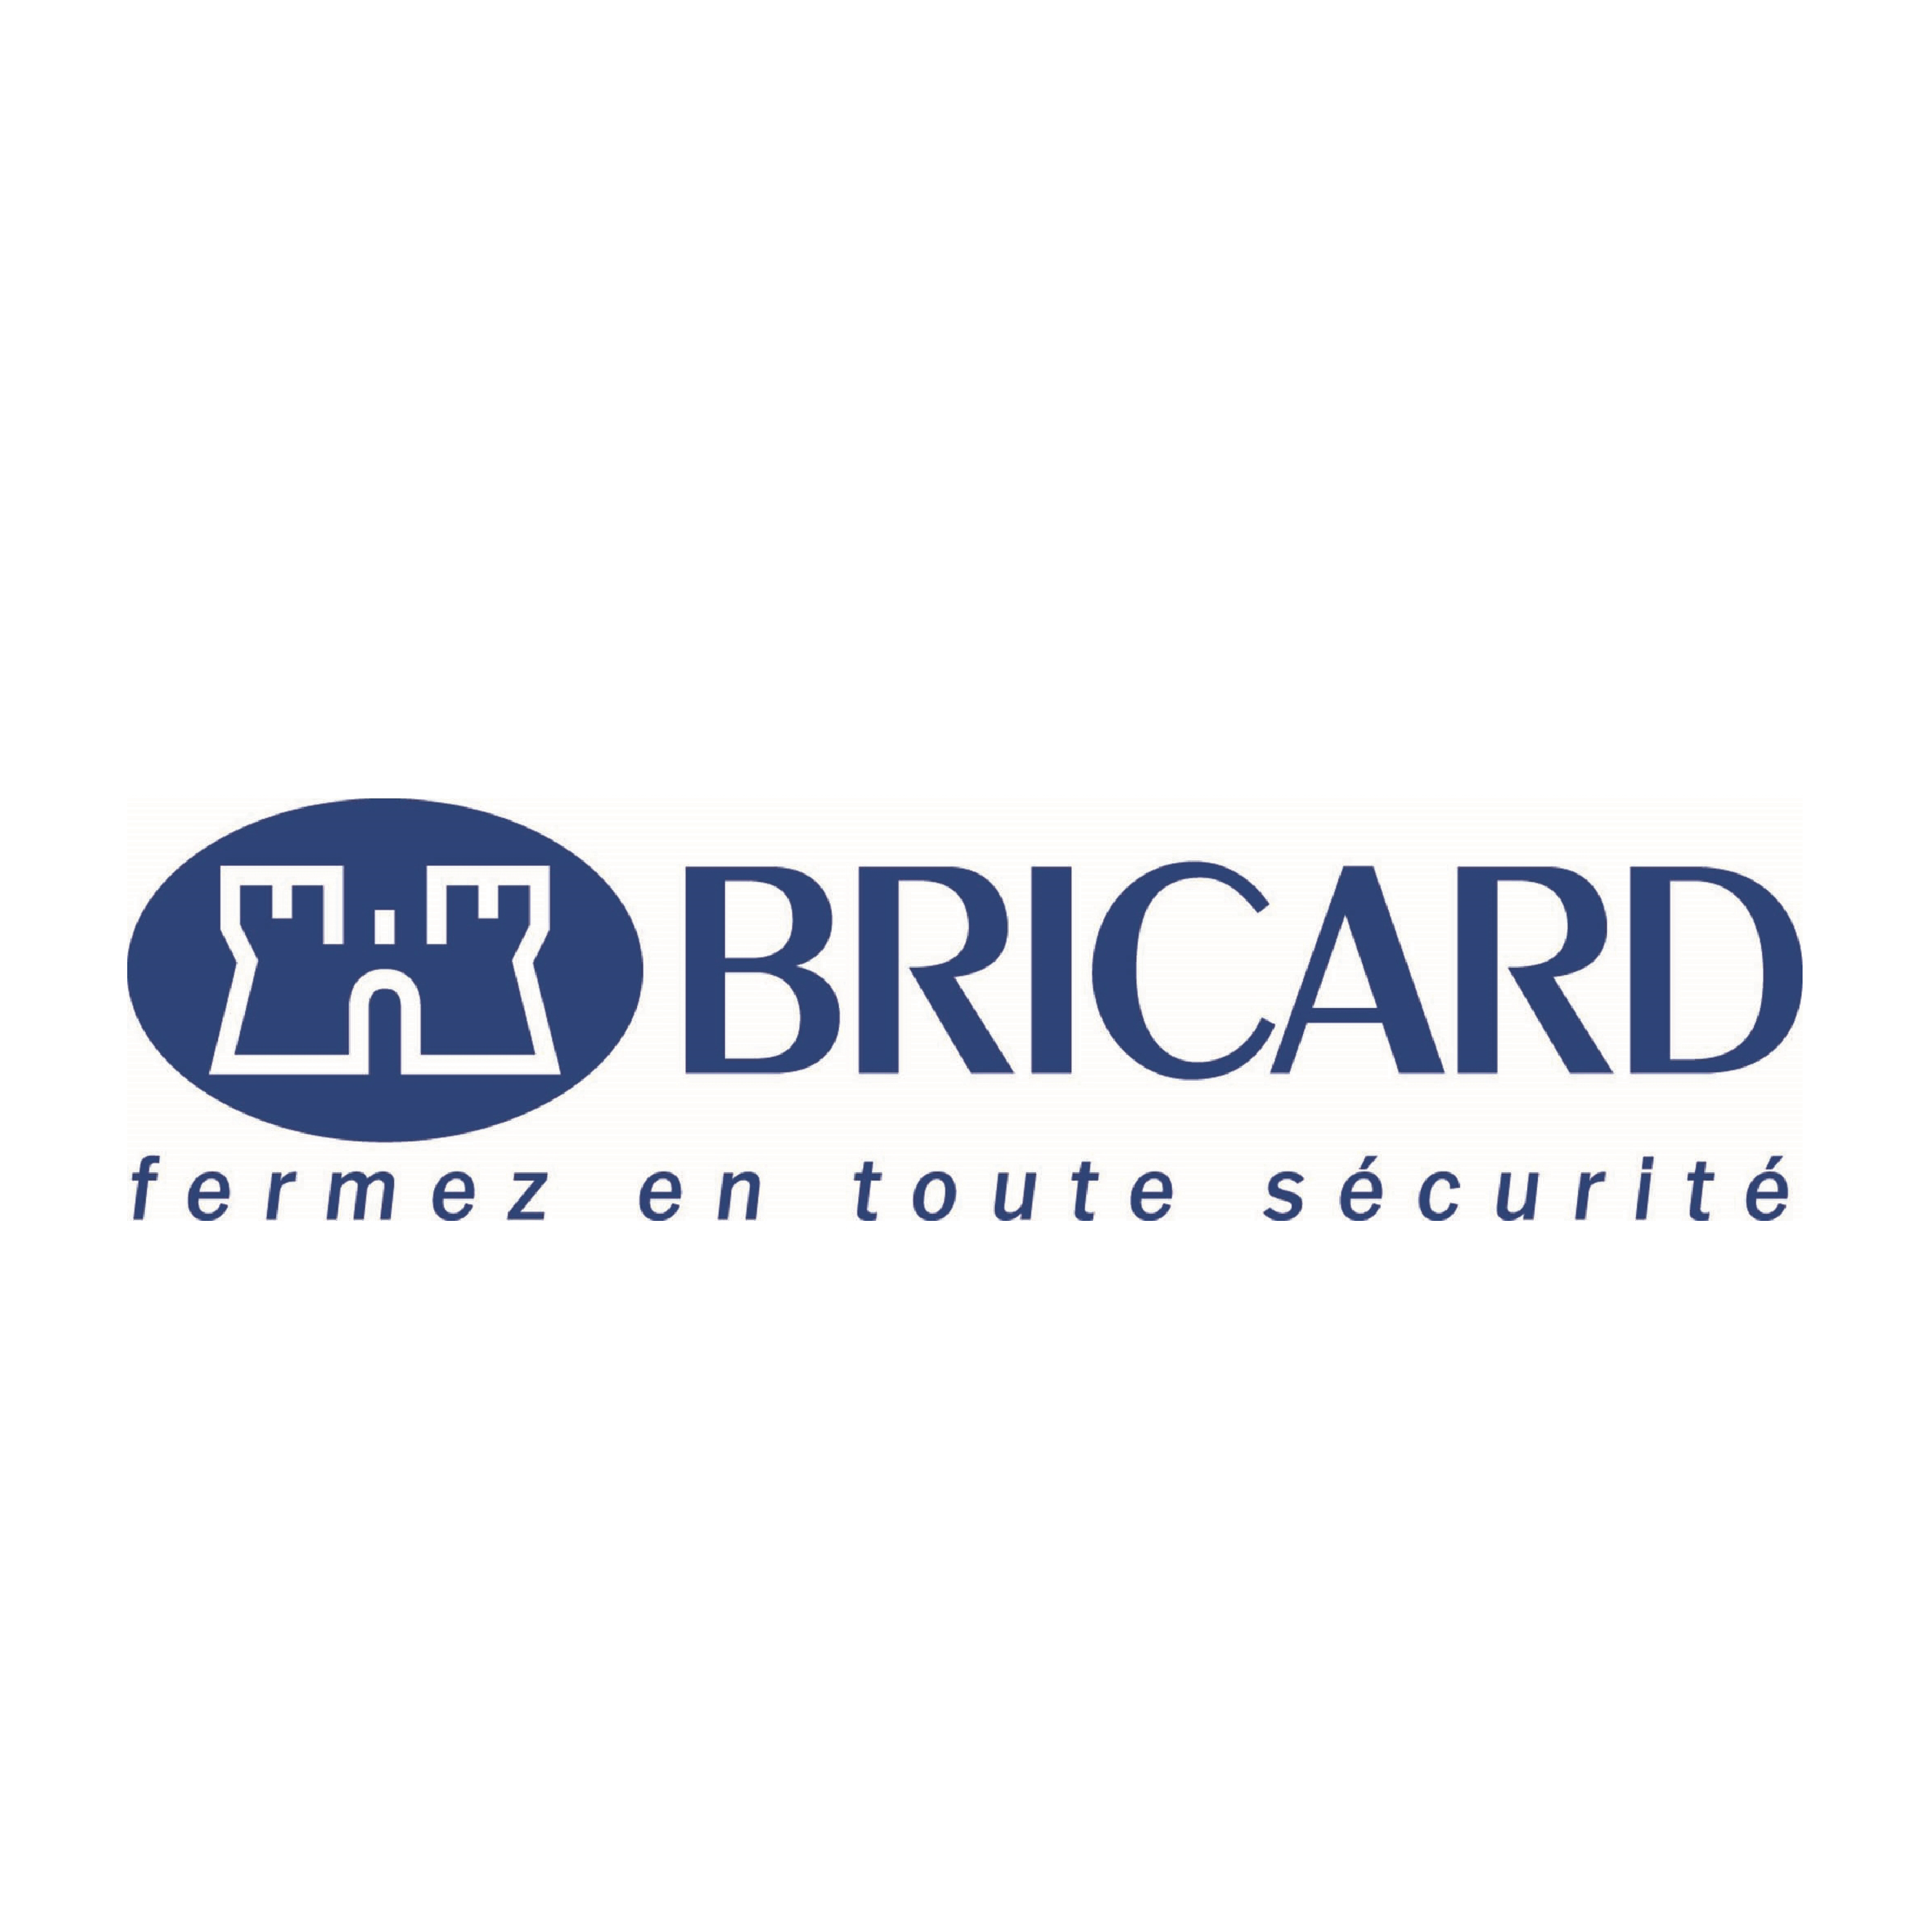 bricard dépannage paris